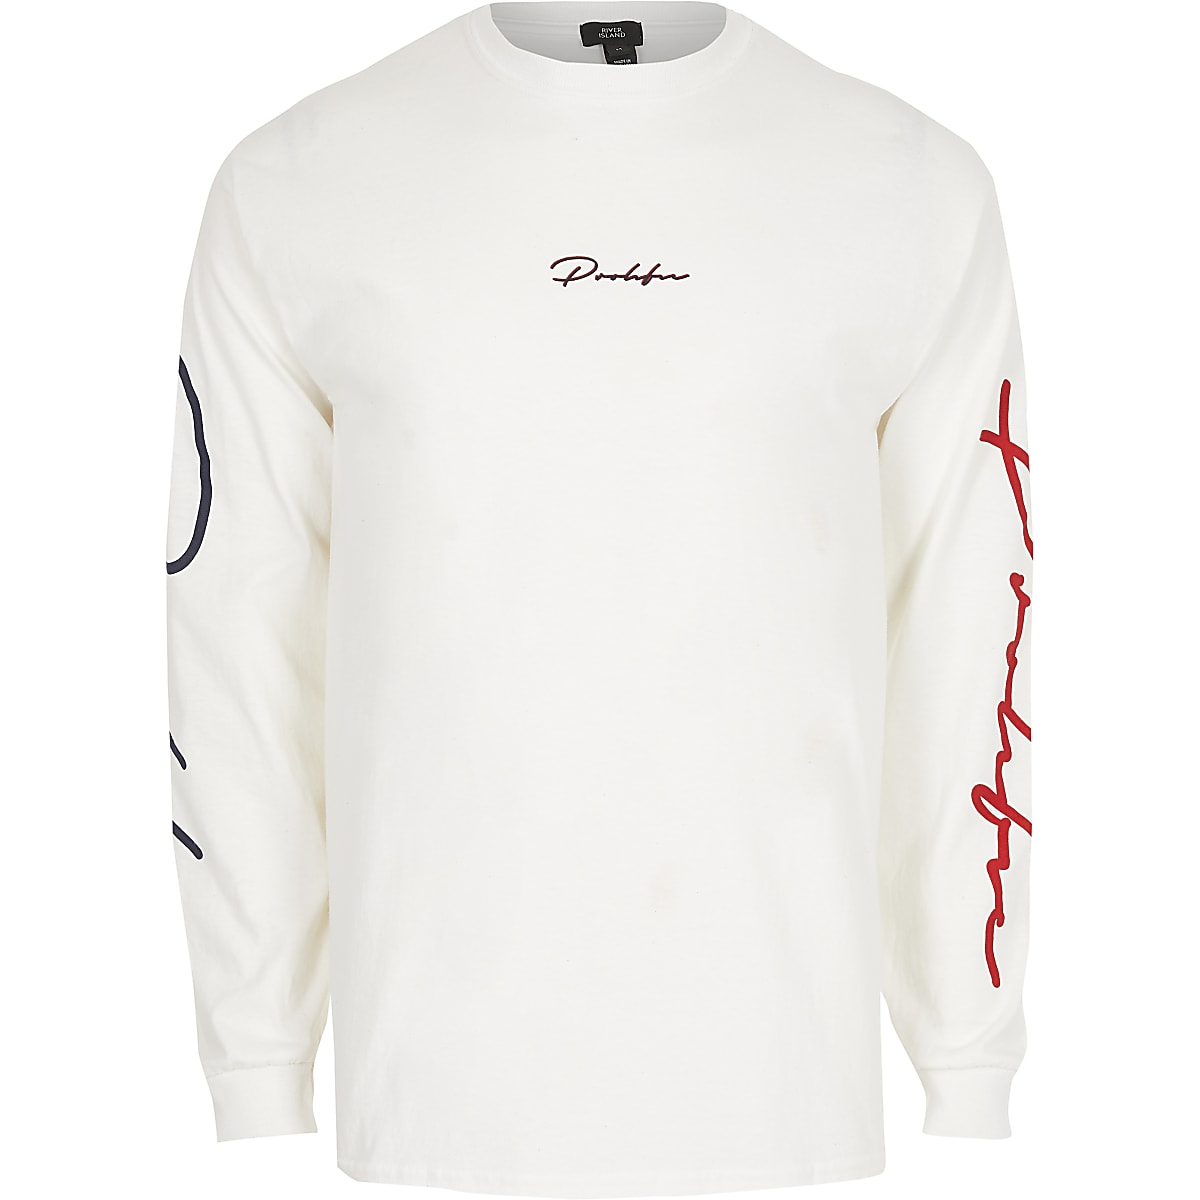 White 'Prolific' long sleeve print T-shirt